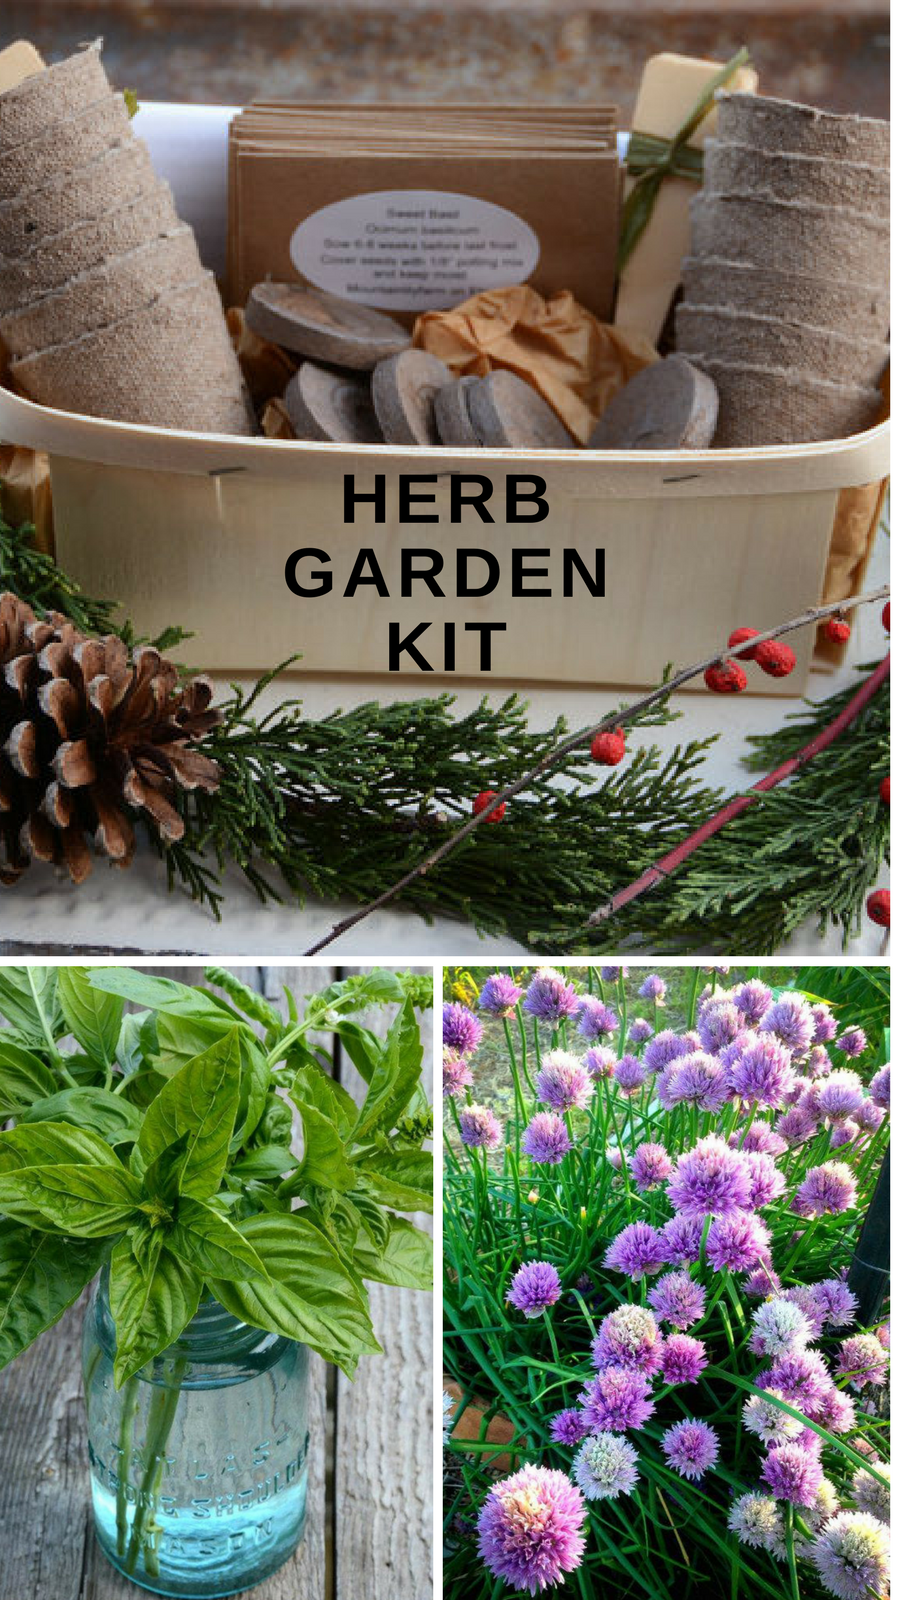 Herb garden kit. Love the flavors fresh herbs deliver